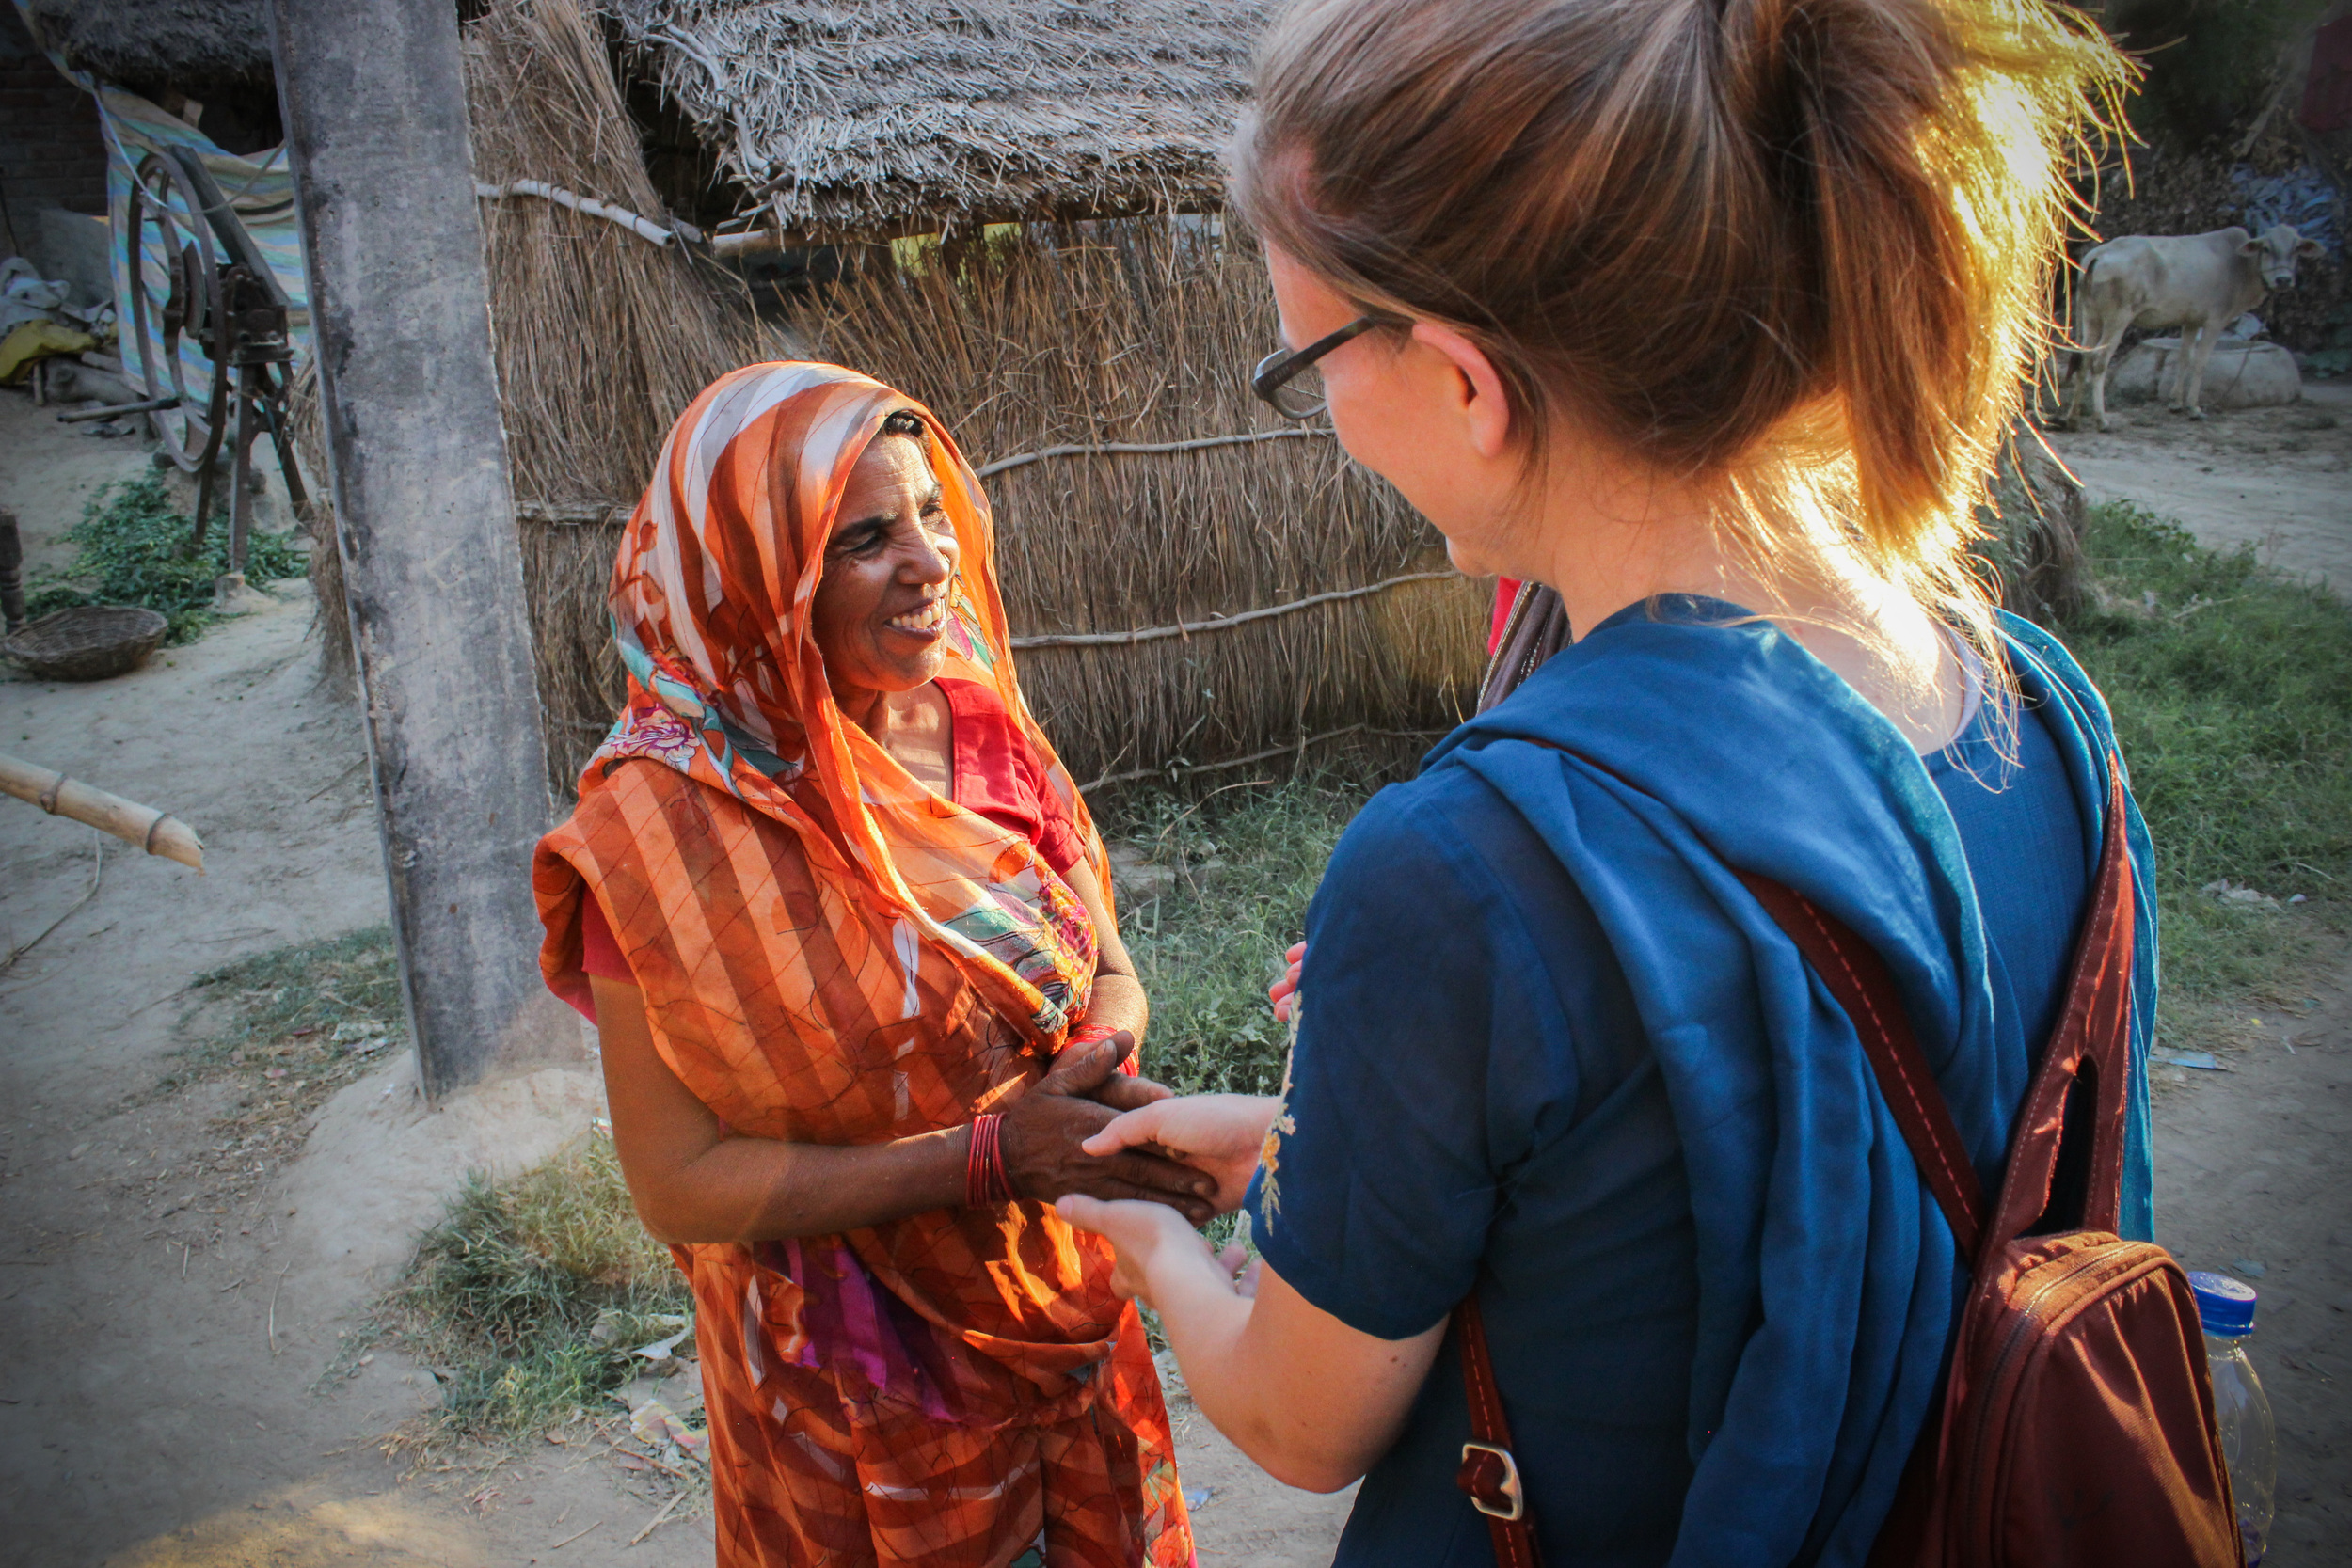 Rachel says goodbye to Santosh's mother, thanking them for their time and hospitality.